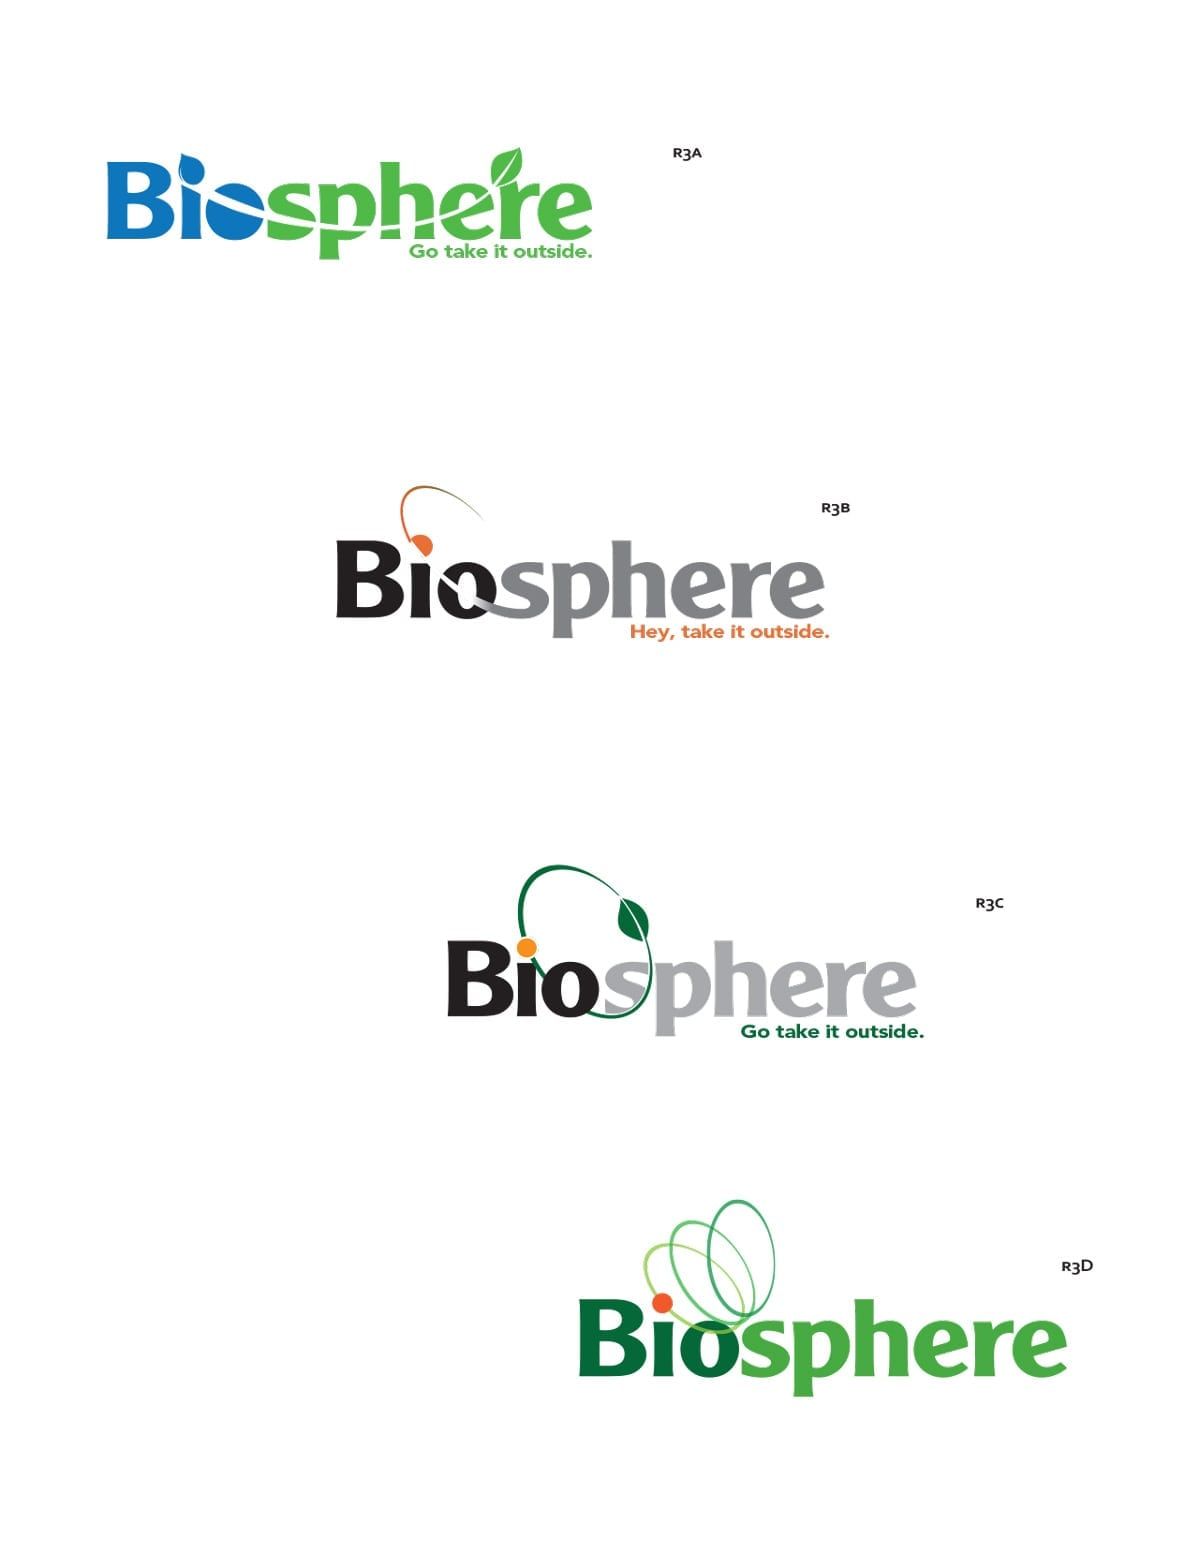 image of logo design comparisons by professional brand design firm in Boston Massachusetts